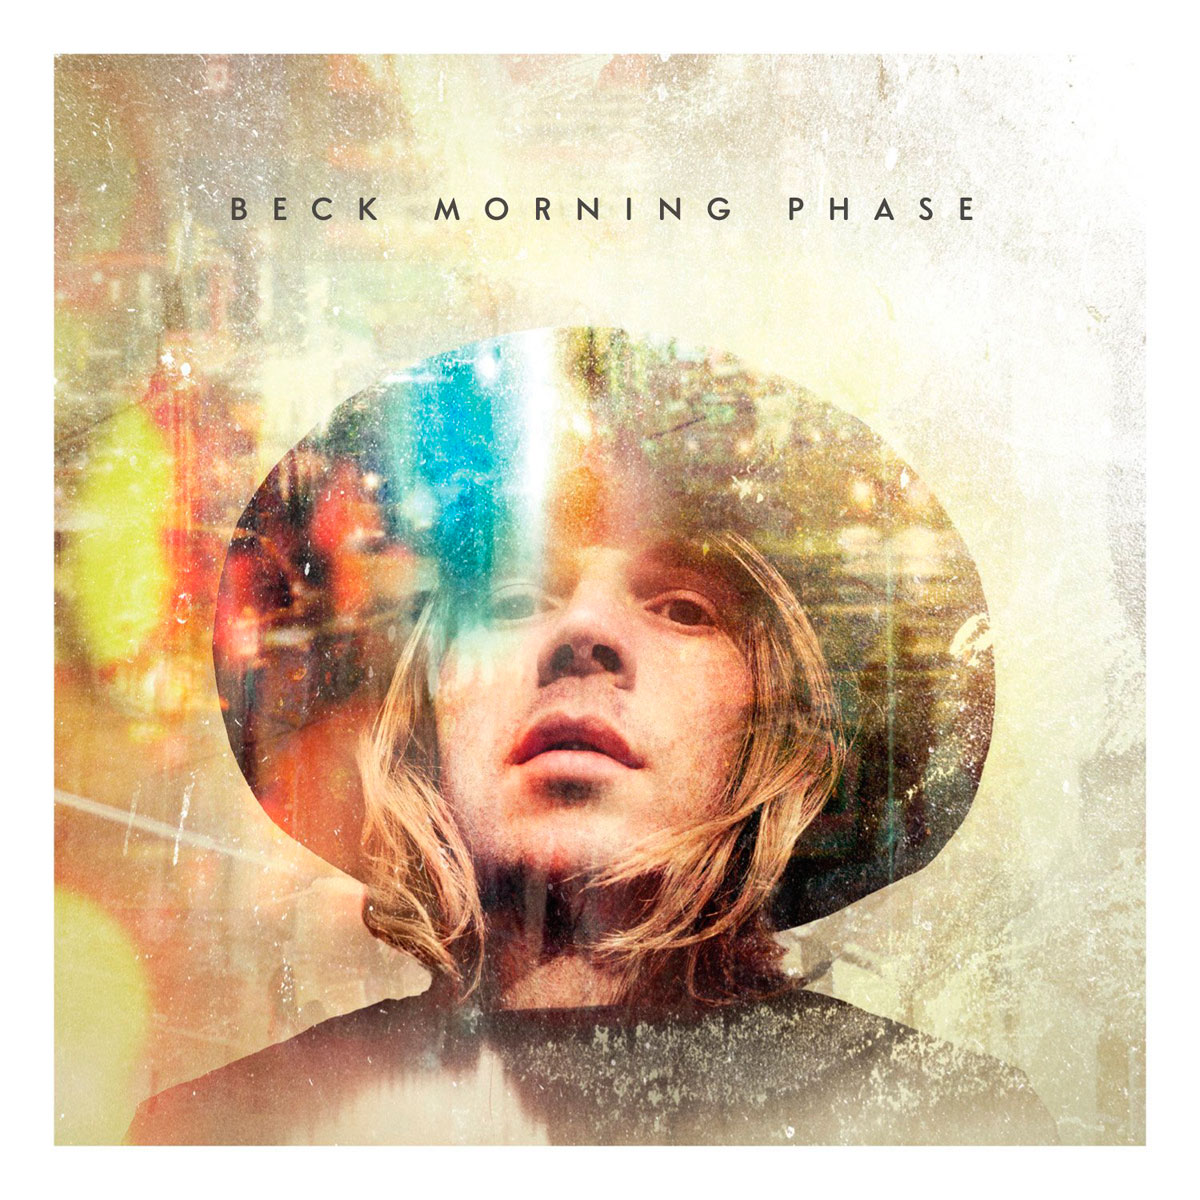 Beck, la portada de su disco Morning phase